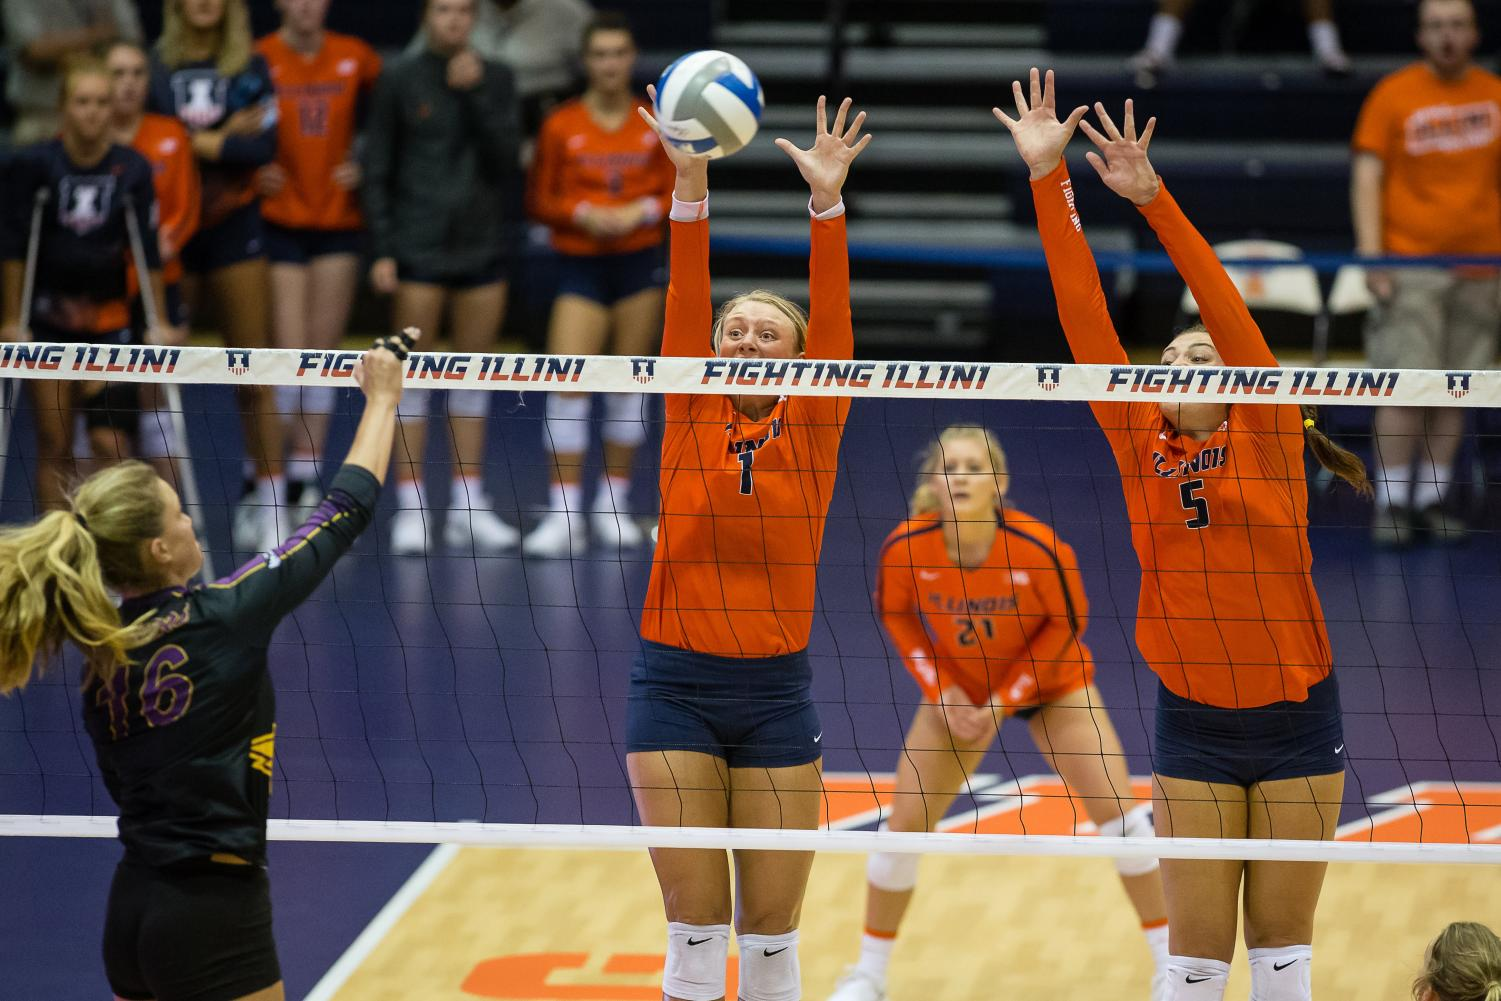 Illinois setter Jordyn Poulter (left) and middle blocker Ali Bastianelli (right) attempt to block the ball during the match against Northern Iowa at Huff Hall on Friday. The Illini won 3-0.